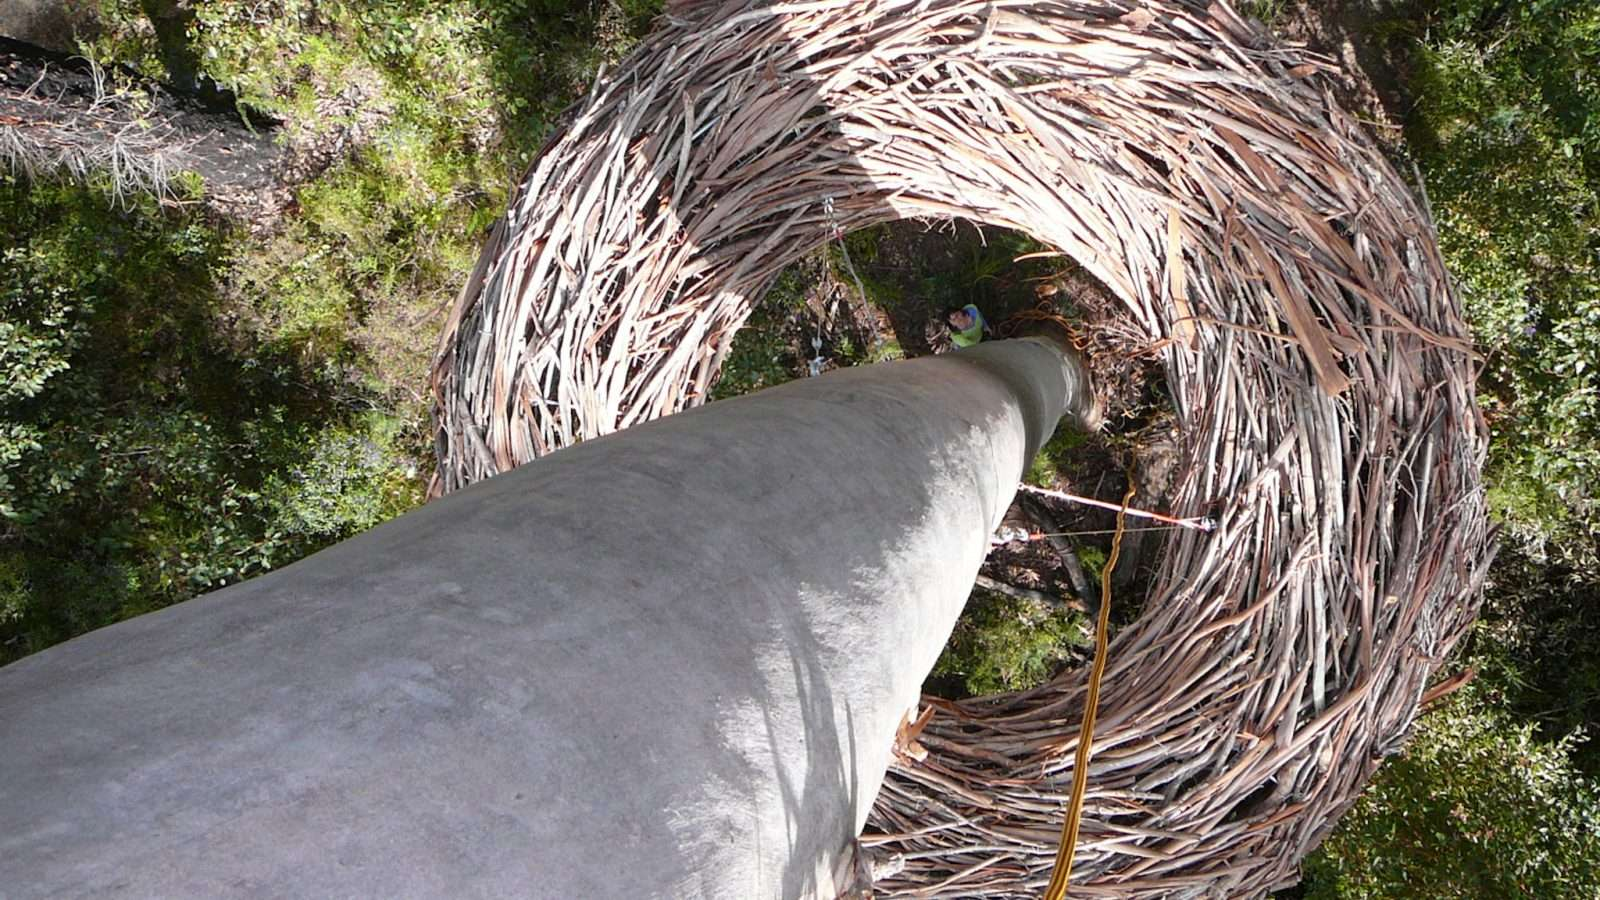 'Whole, You Were Meant to Be Here' by Lorenna Grant on the Understory Art & Nature Trail, developed by Southern Forest Arts in Northcliffe, Western Australia